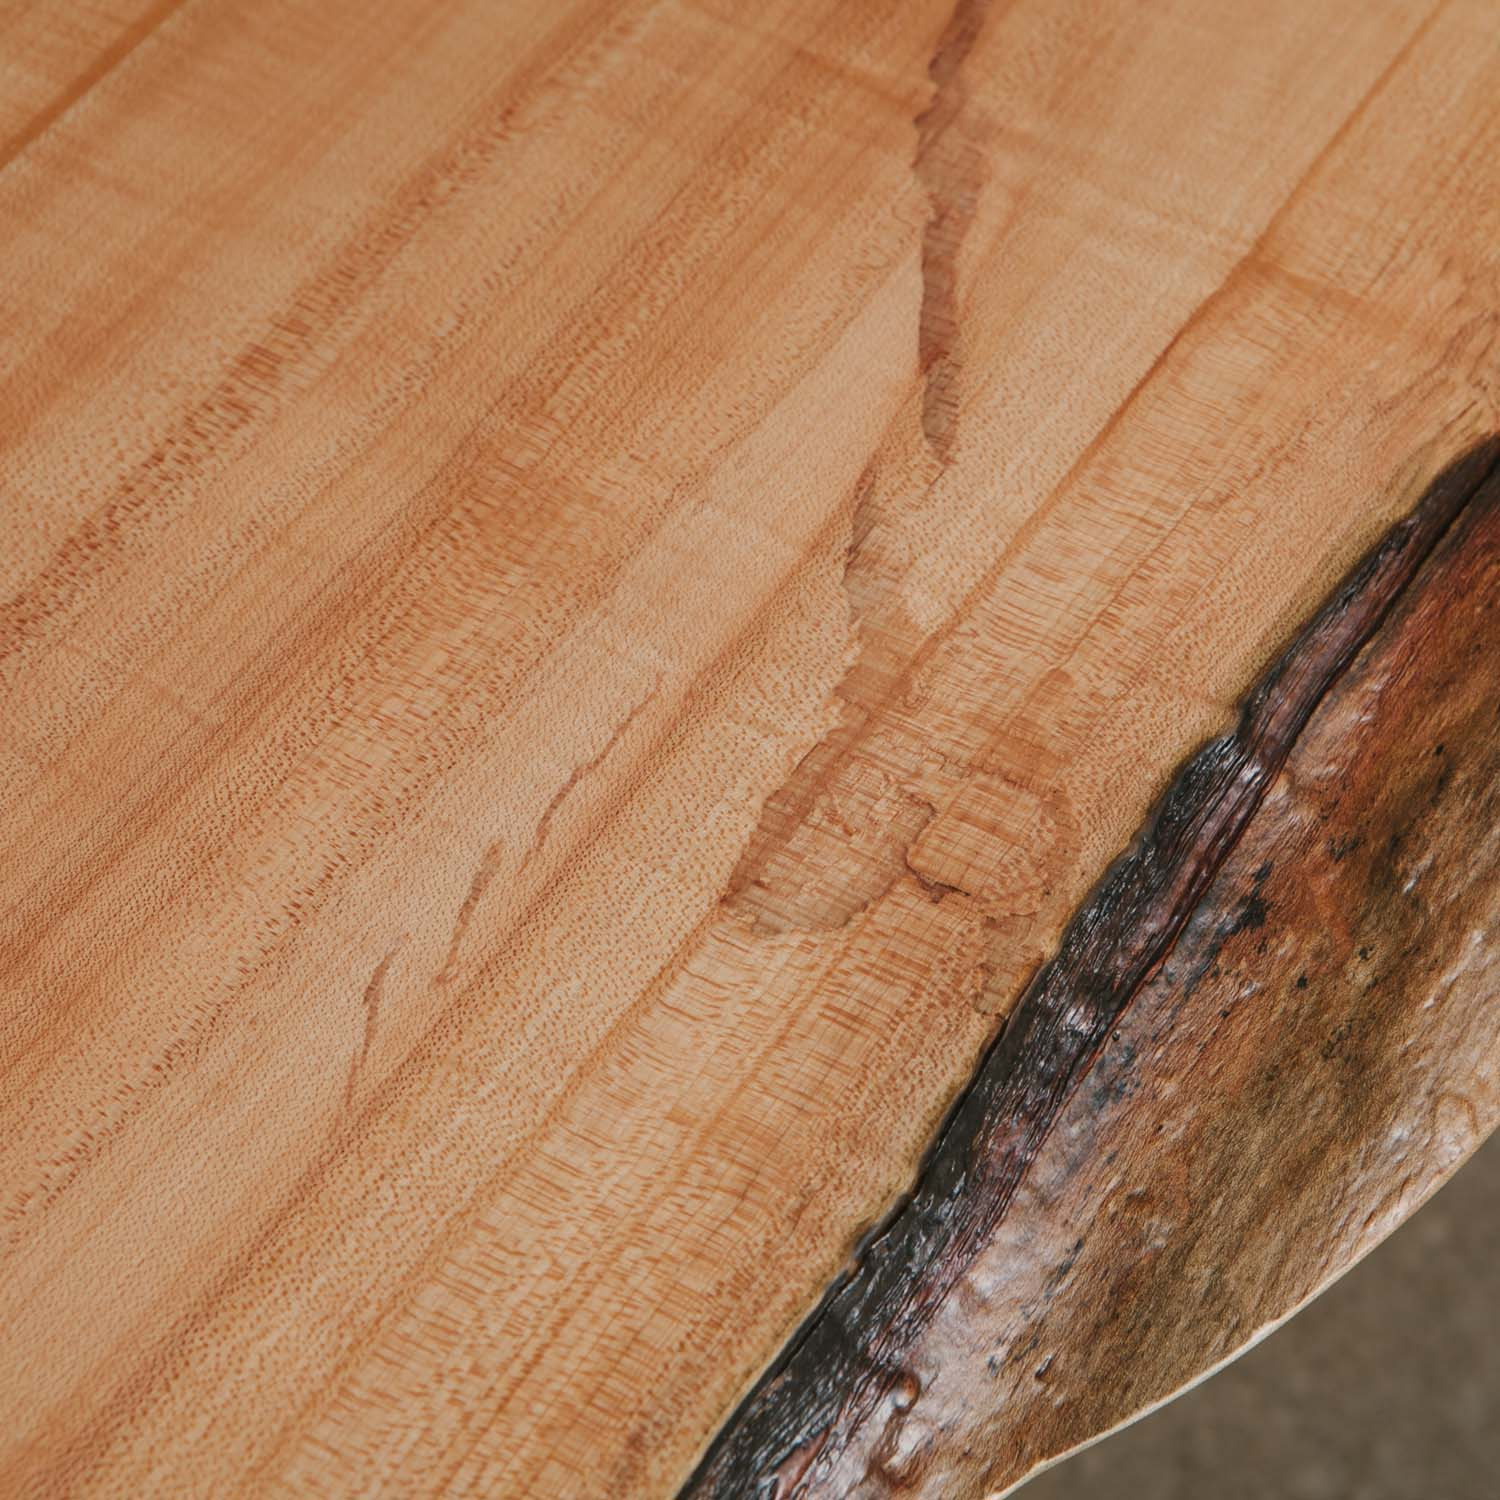 Live edge maple wood detail